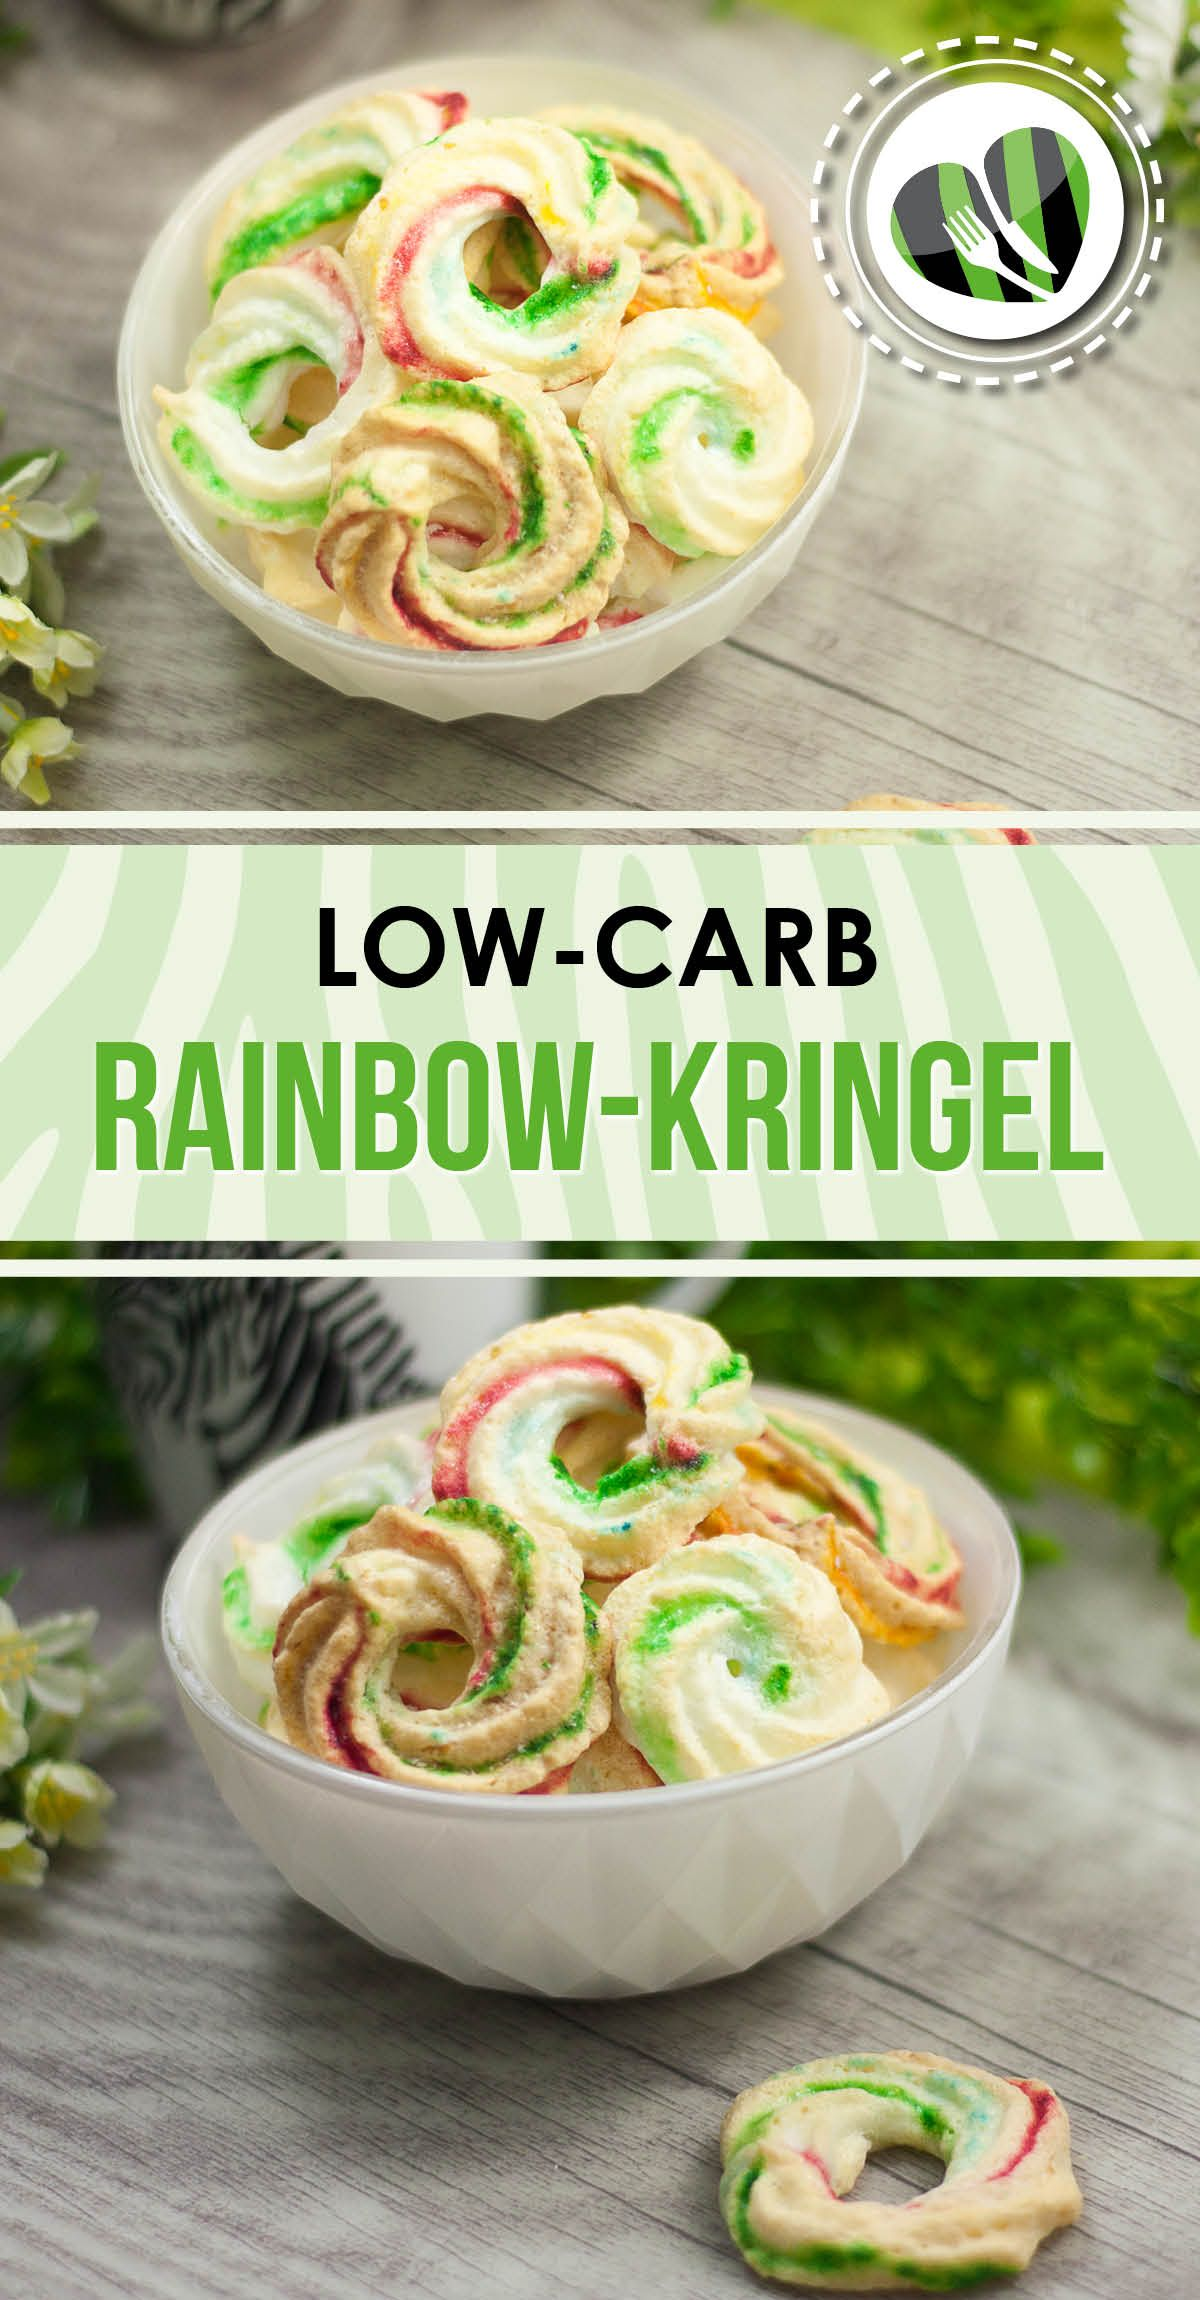 rainbow kringel lecker lowcarb und kalorienarm low. Black Bedroom Furniture Sets. Home Design Ideas